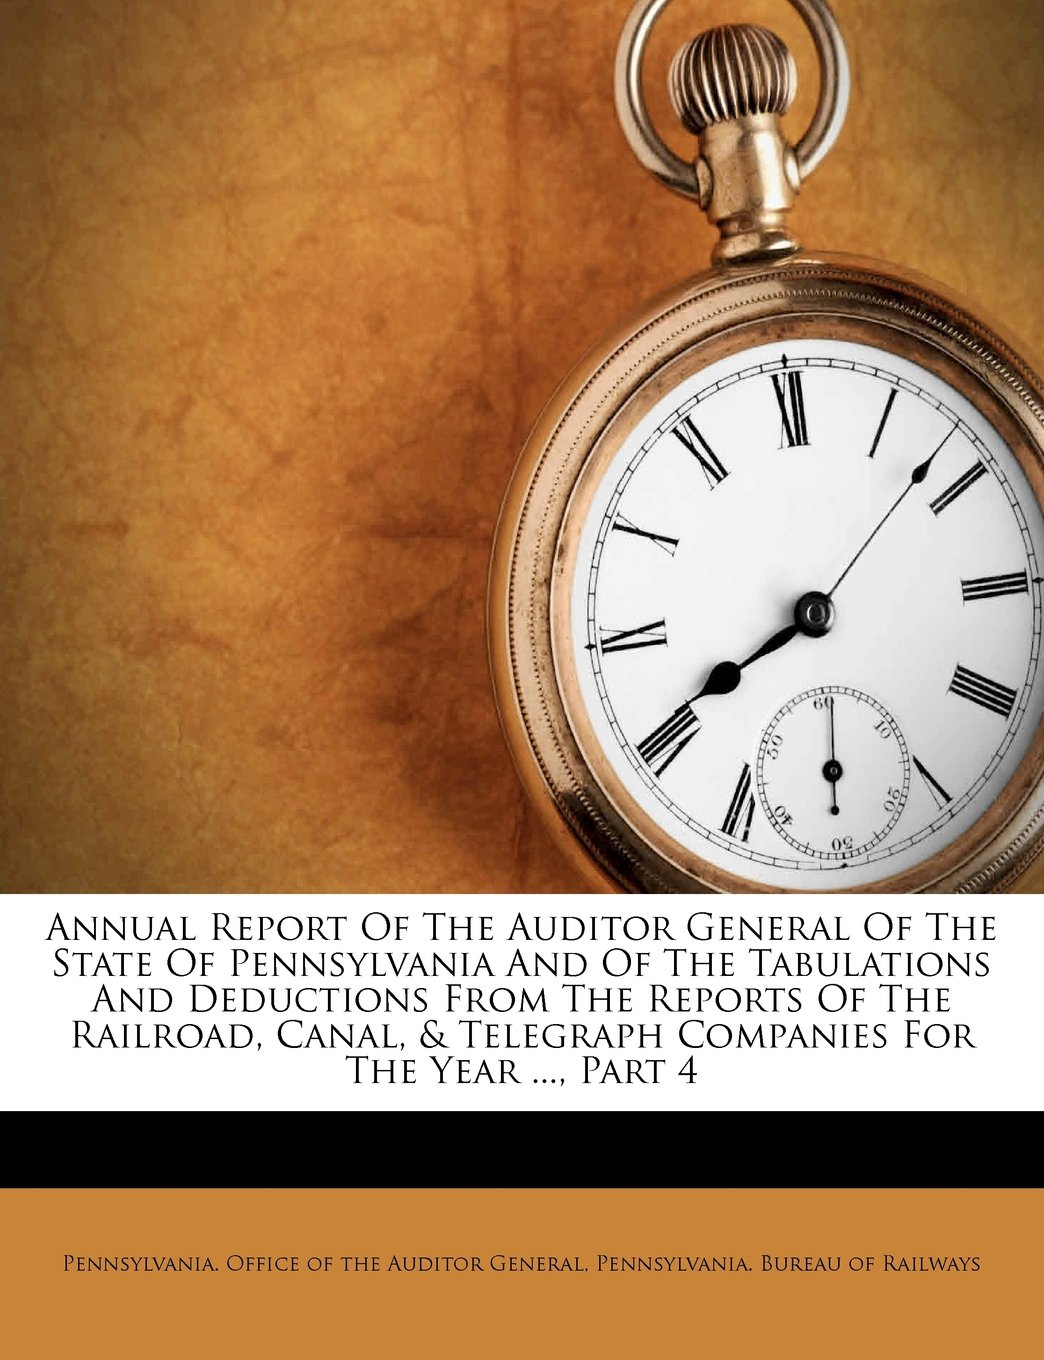 Read Online Annual Report Of The Auditor General Of The State Of Pennsylvania And Of The Tabulations And Deductions From The Reports Of The Railroad, Canal, & Telegraph Companies For The Year ..., Part 4 ebook